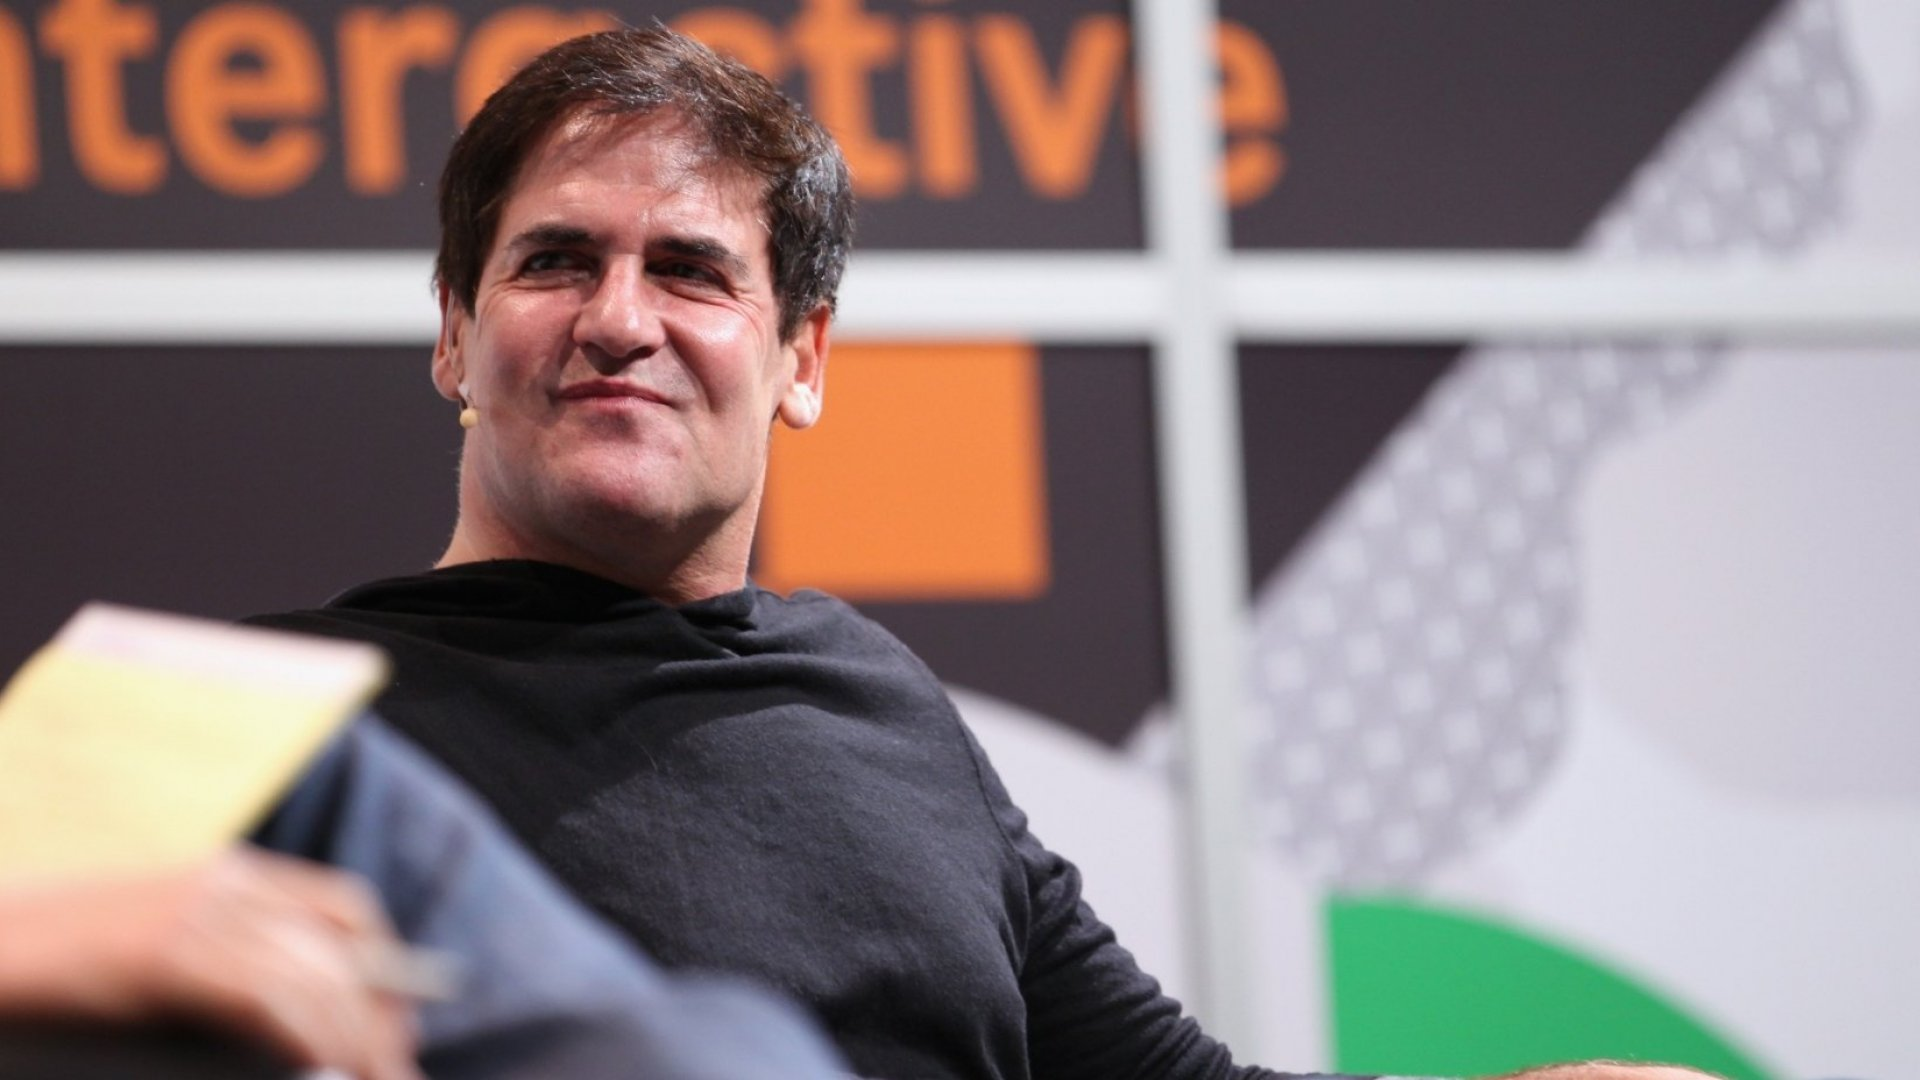 Mark Cuban speaks onstage at 'One On One with Mark Cuban' during the 2014 SXSW Music, Film, and Interactive Festival.